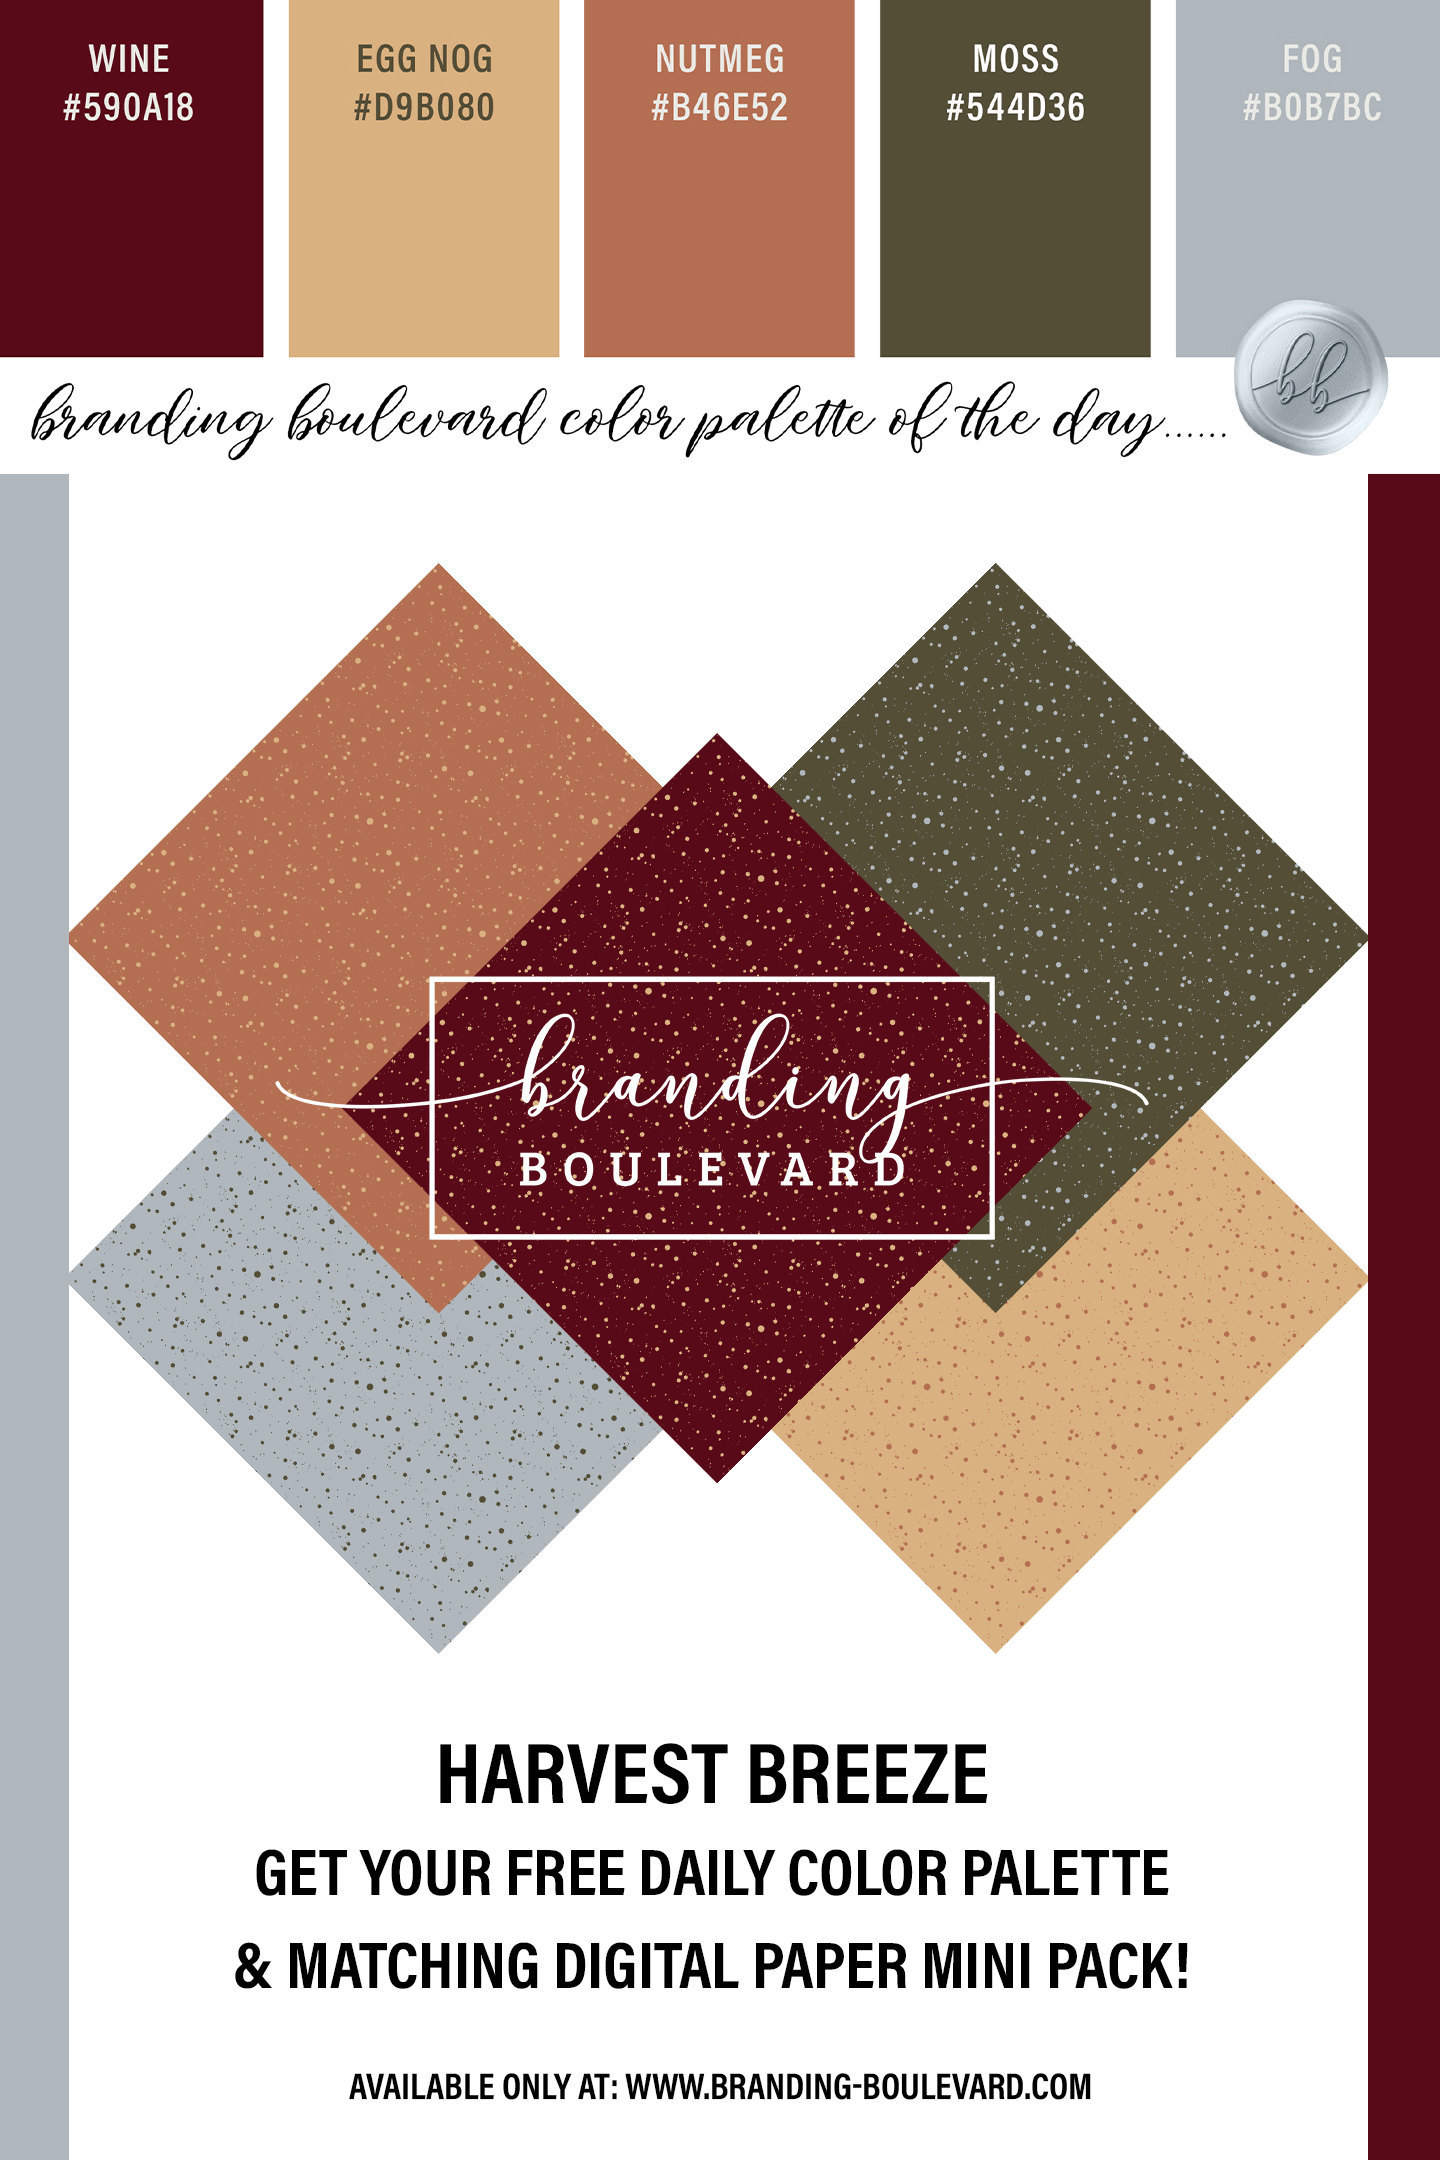 free digital paper set for Harvest Breeze! A set of 5 simple polka dot background papers in this color palette. Wine Red, Eggnog Yellow, Nutmeg, Moss, and Fog